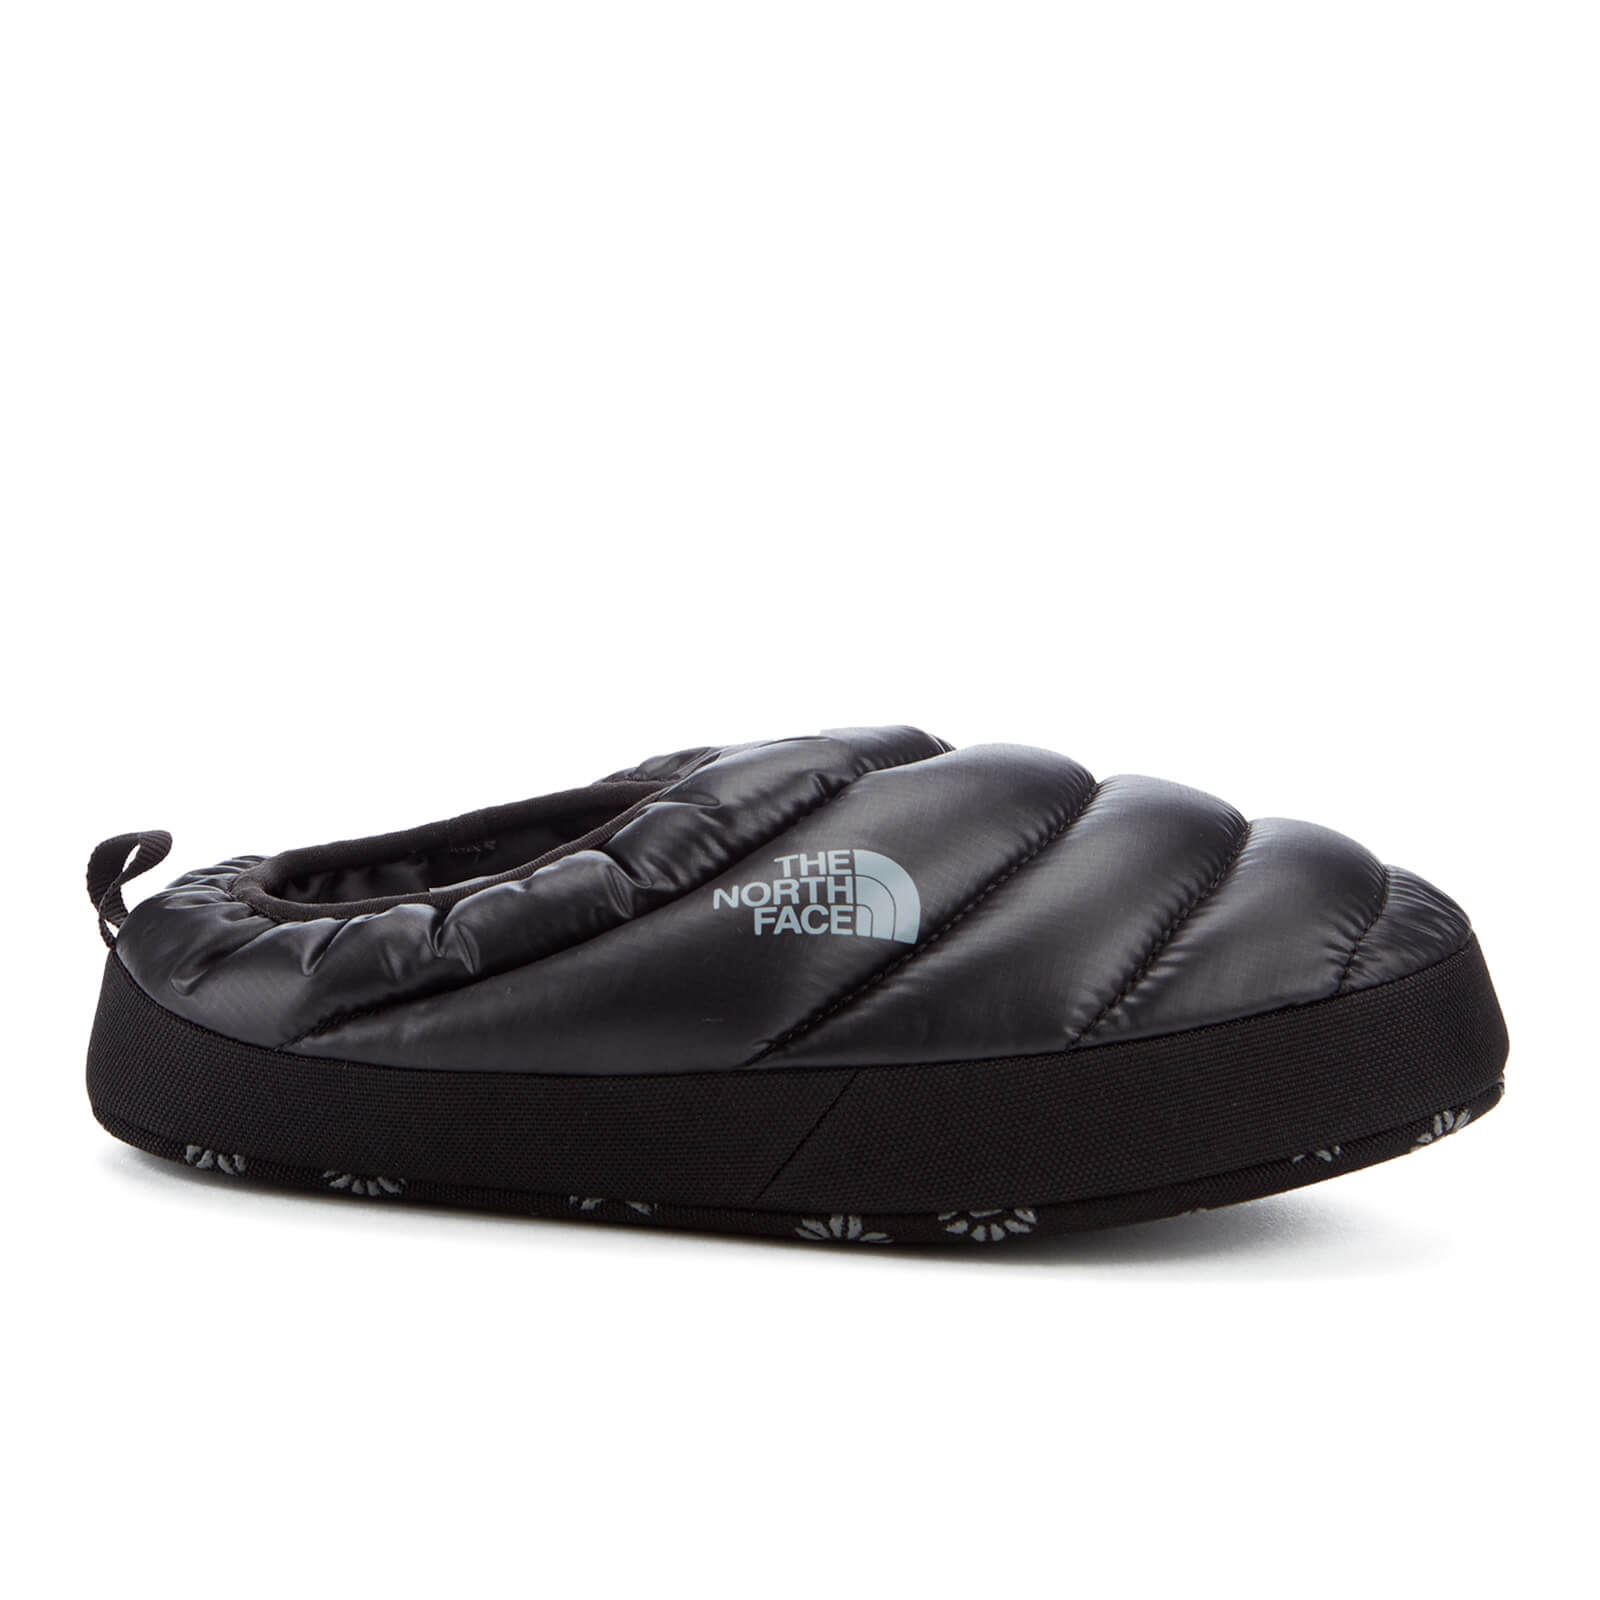 a41e9b206 The North Face Women's NSE Tent Mule III Slippers - Shiny TNF Black